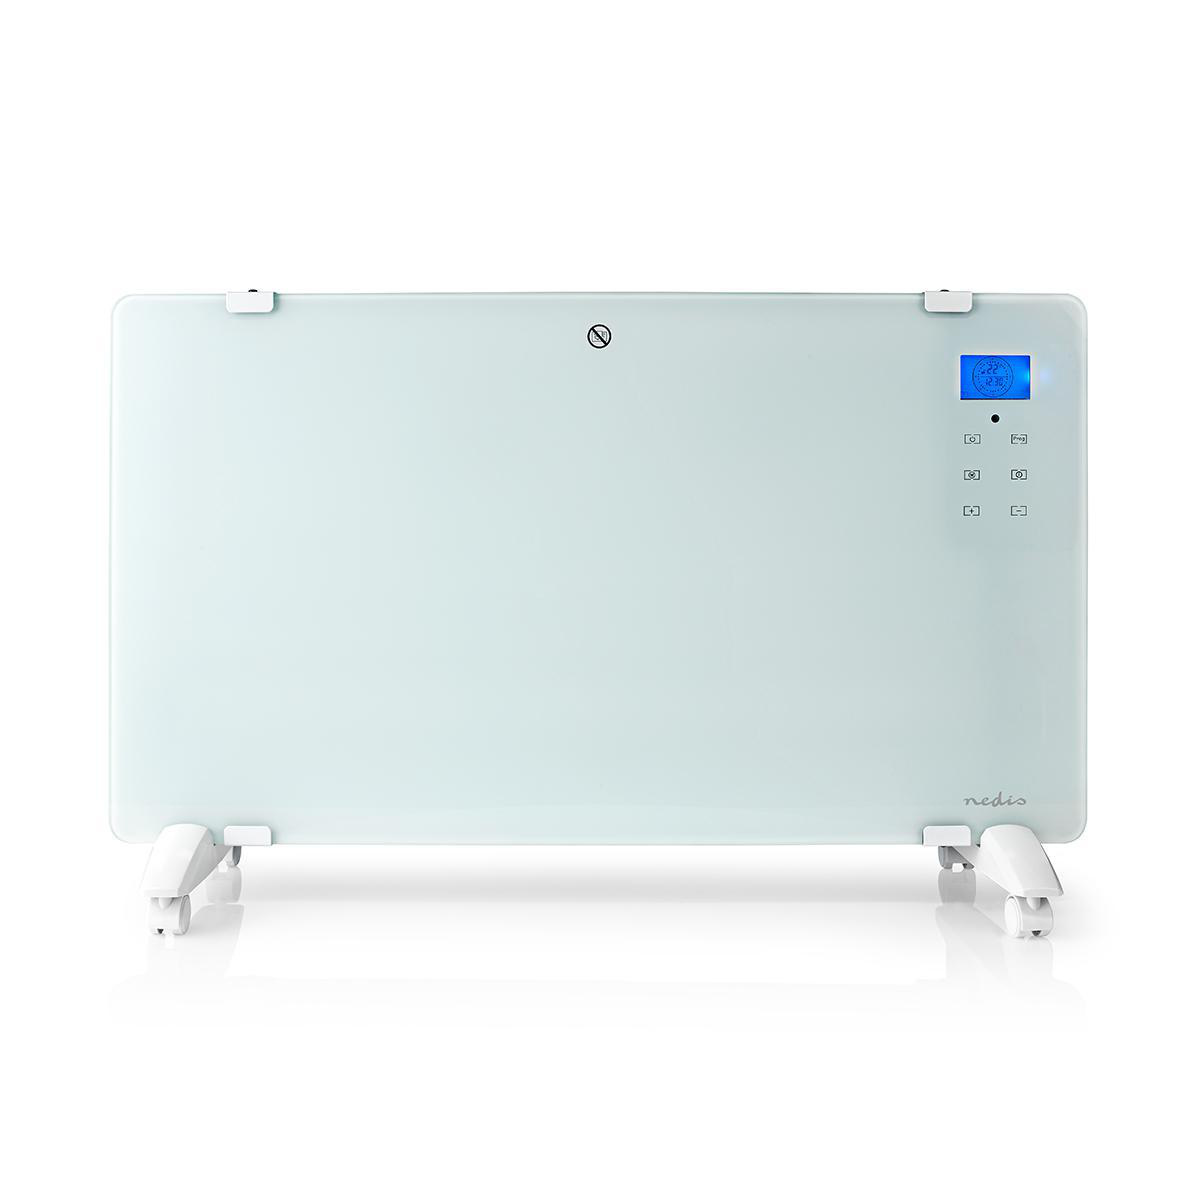 Smart Convector heater with Wi-Fi | Thermostat Glass front panel | 2000 W | White